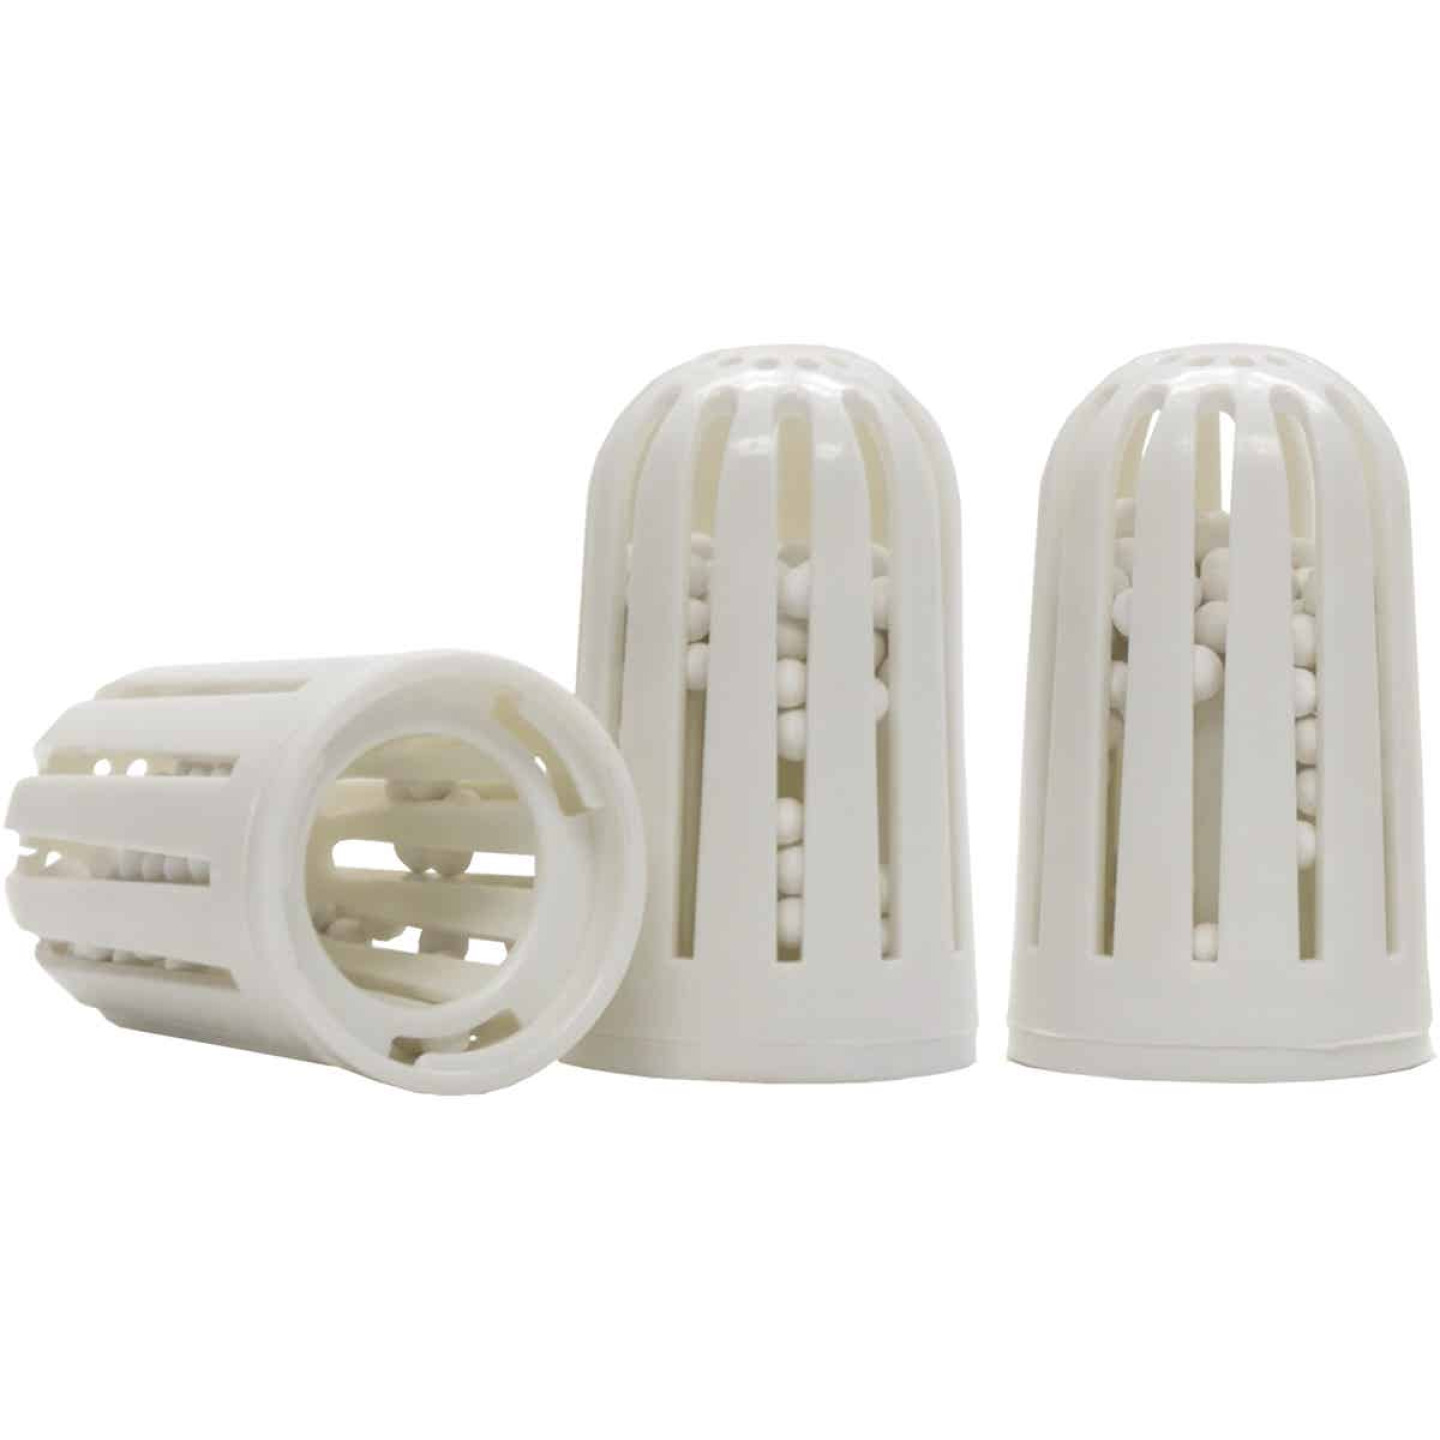 Essick Air AIRCARE Demineralization Humidifier Filter (3-Pack) Image 1